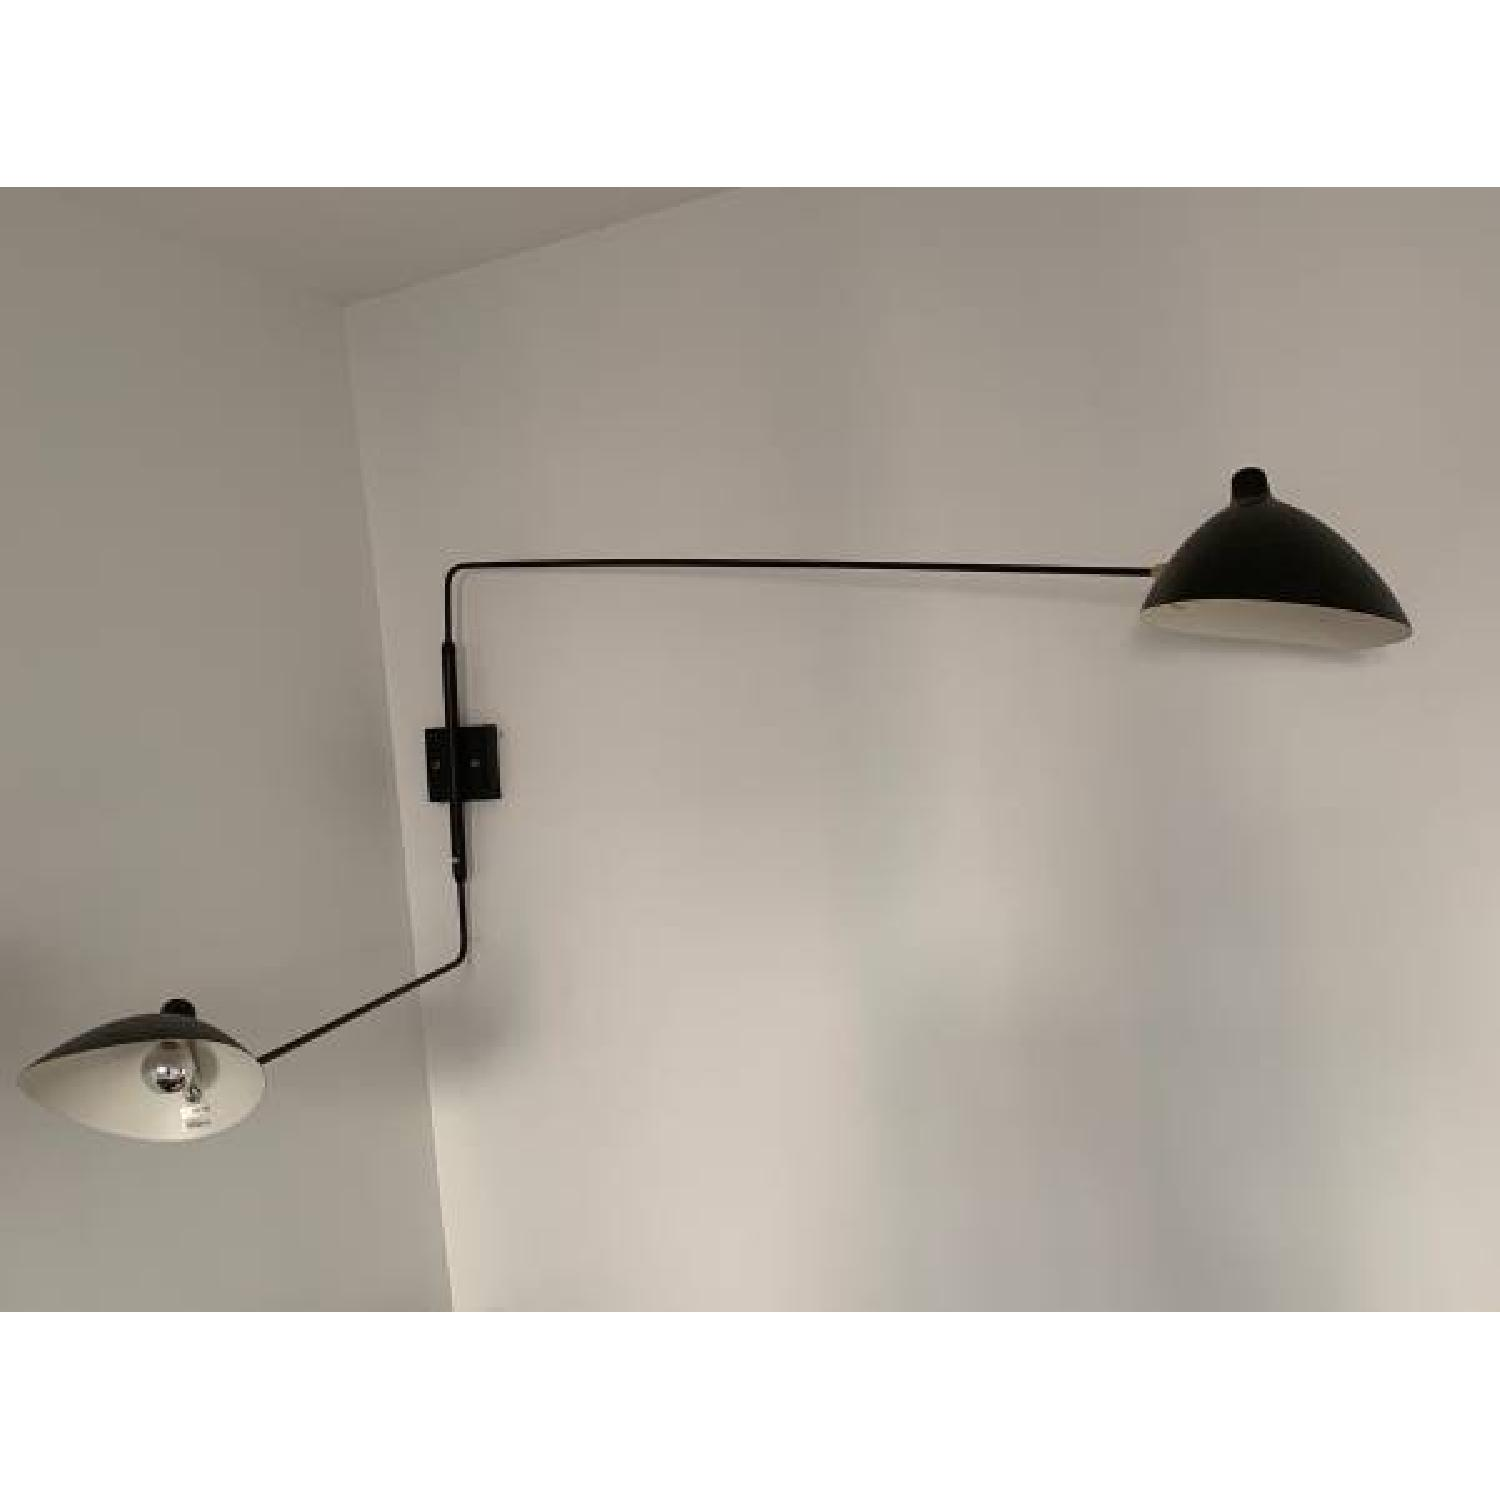 France & Son Serge Mouille Inspired Swing Arm Wall Lamp-1